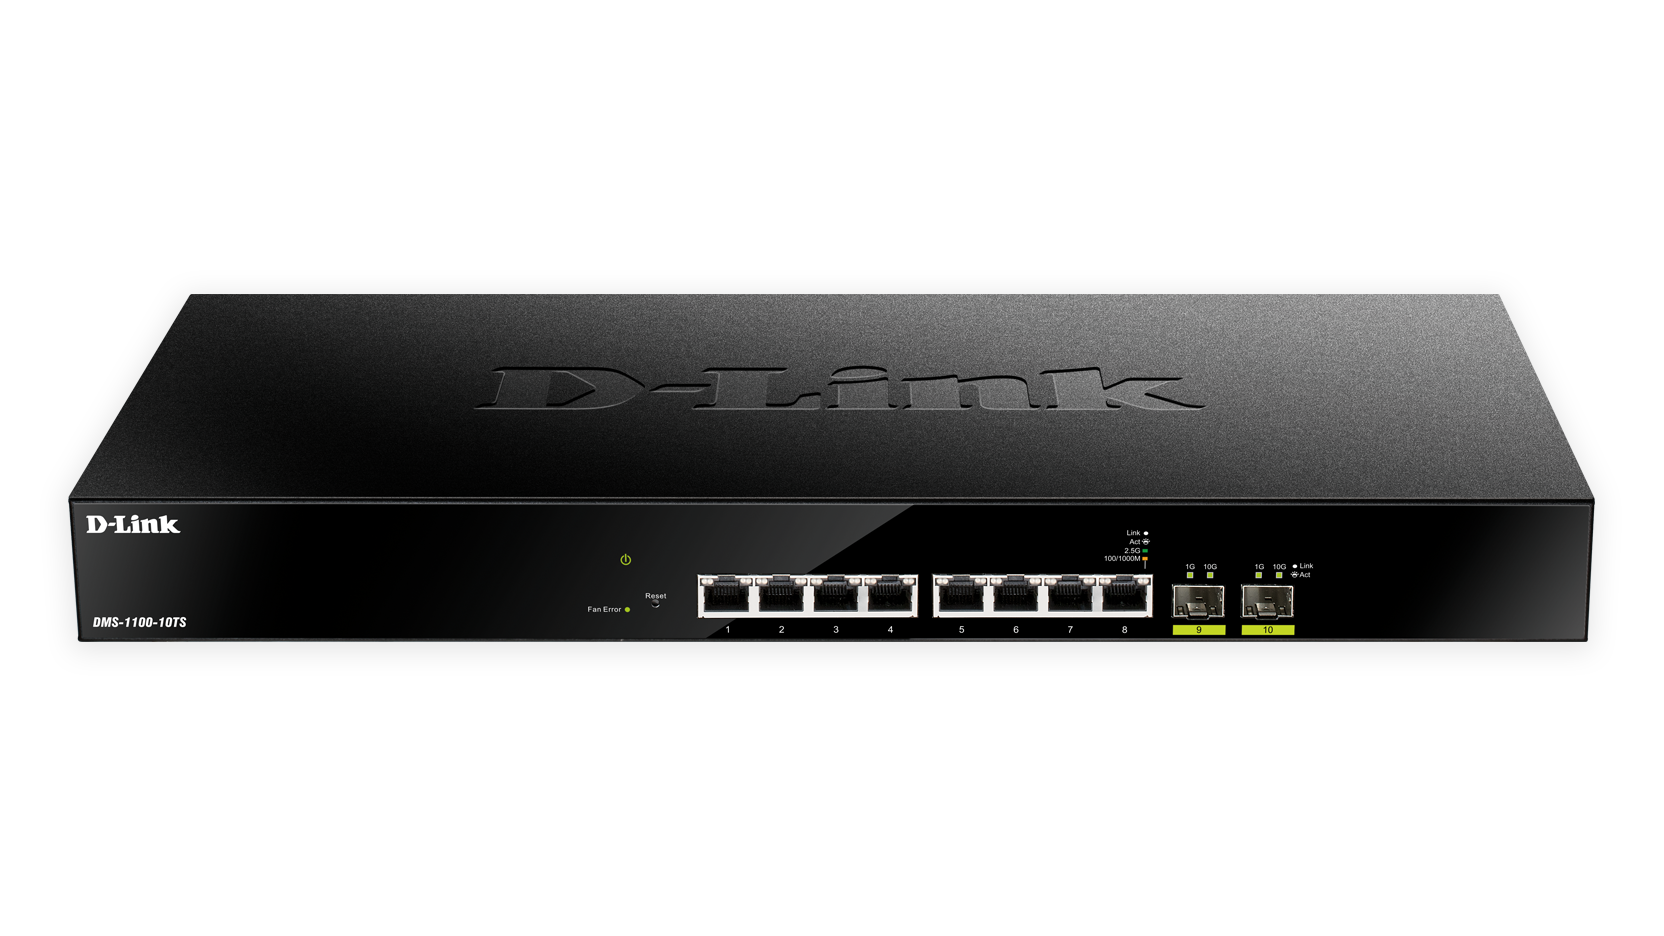 D-Link DMS-1100-10TS Front View